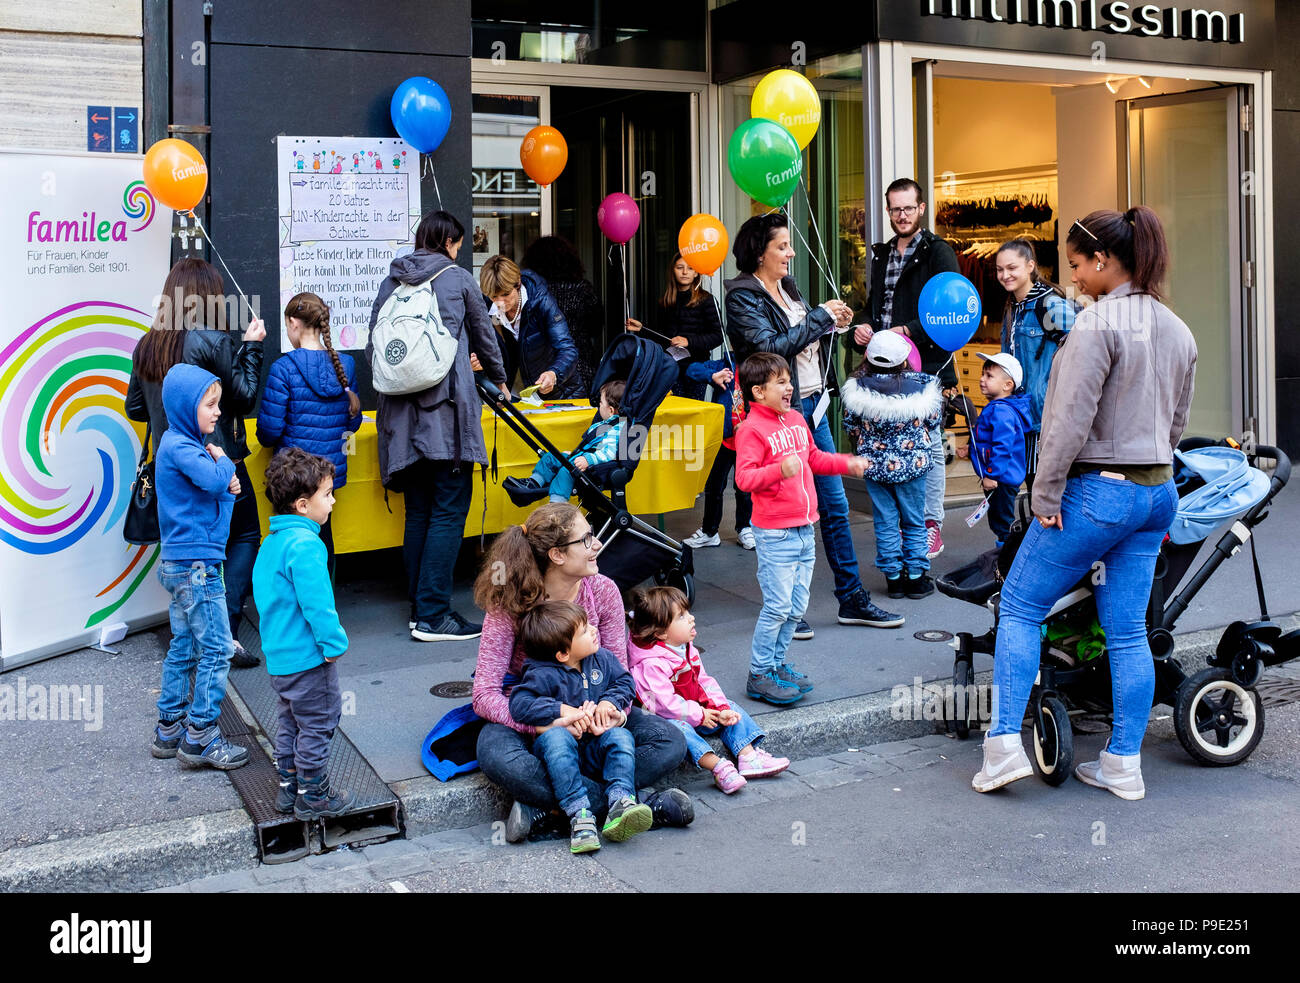 Basel, balloons charity sale on pavement, rising fund, funds,Familea child care center, parents and children, Switzerland, Europe, - Stock Image